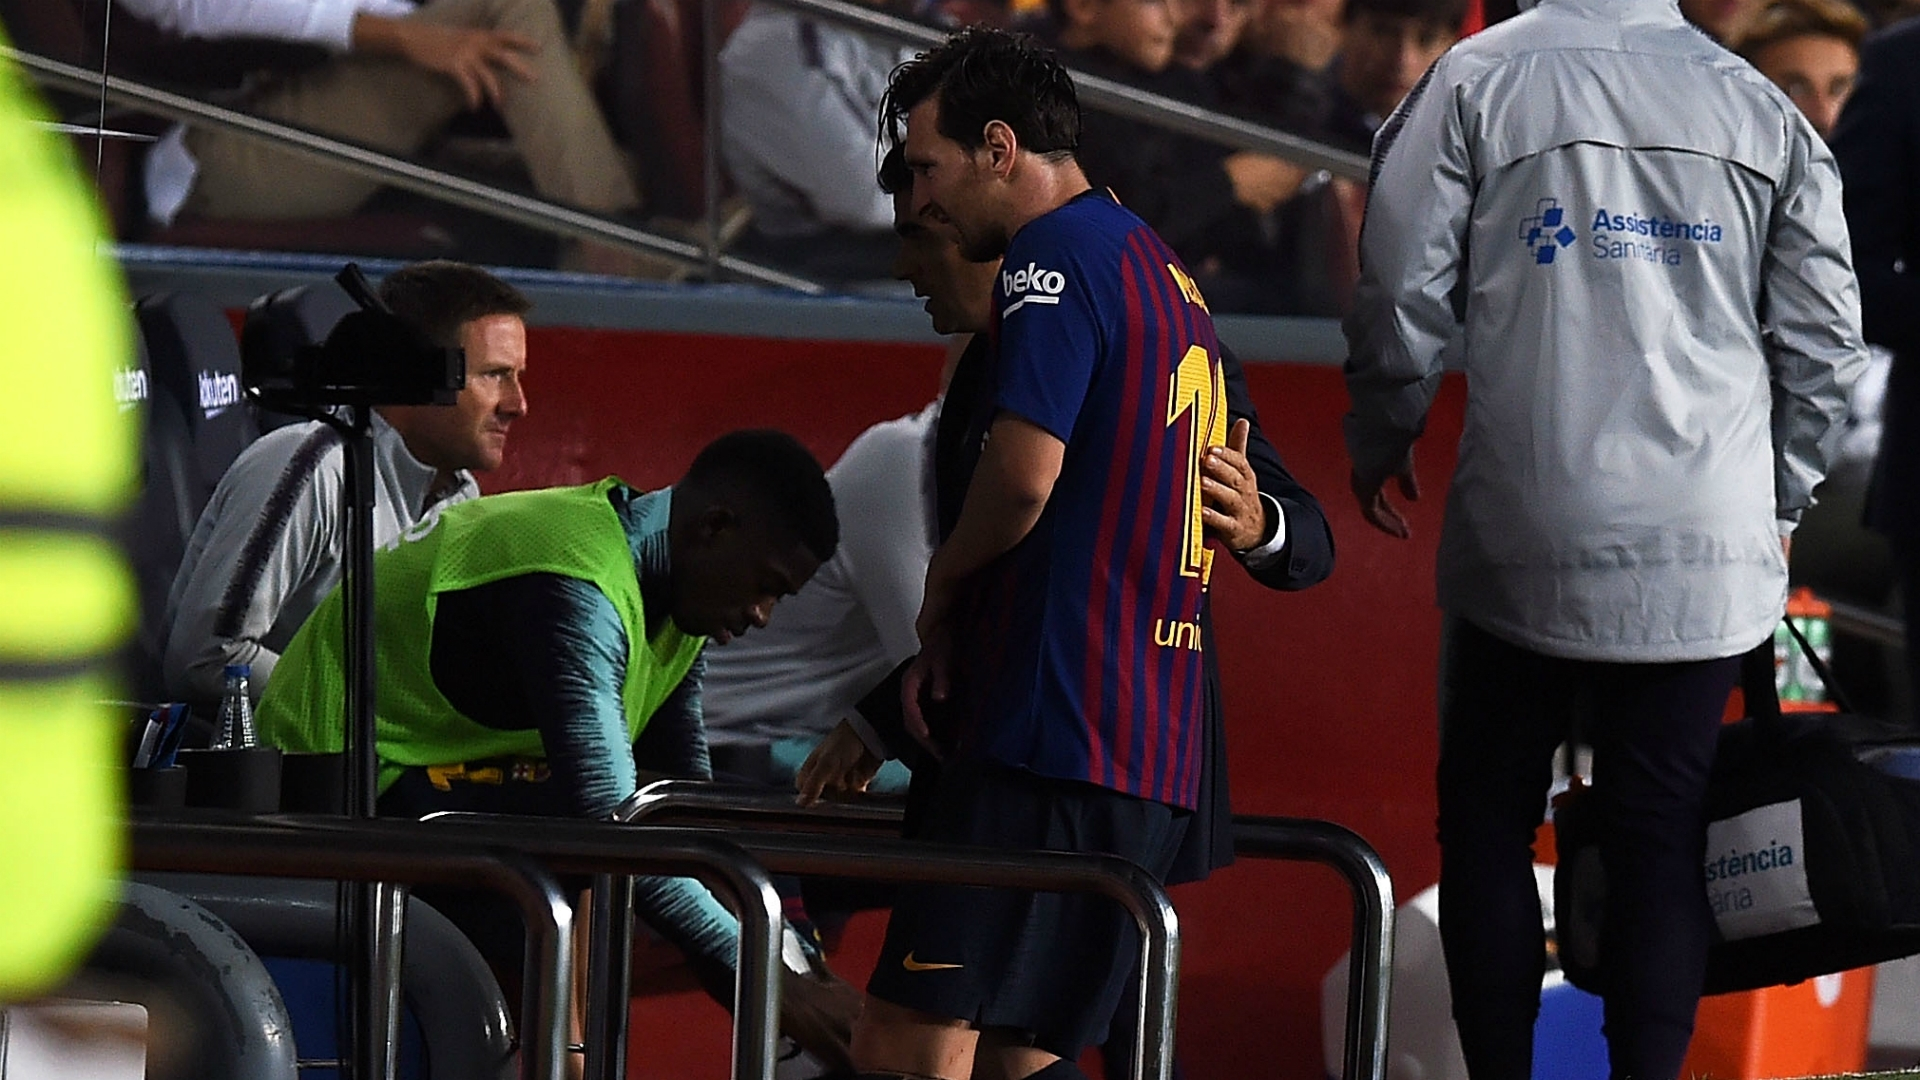 Lionel Messi to miss ChampionsLeague derby against Inter